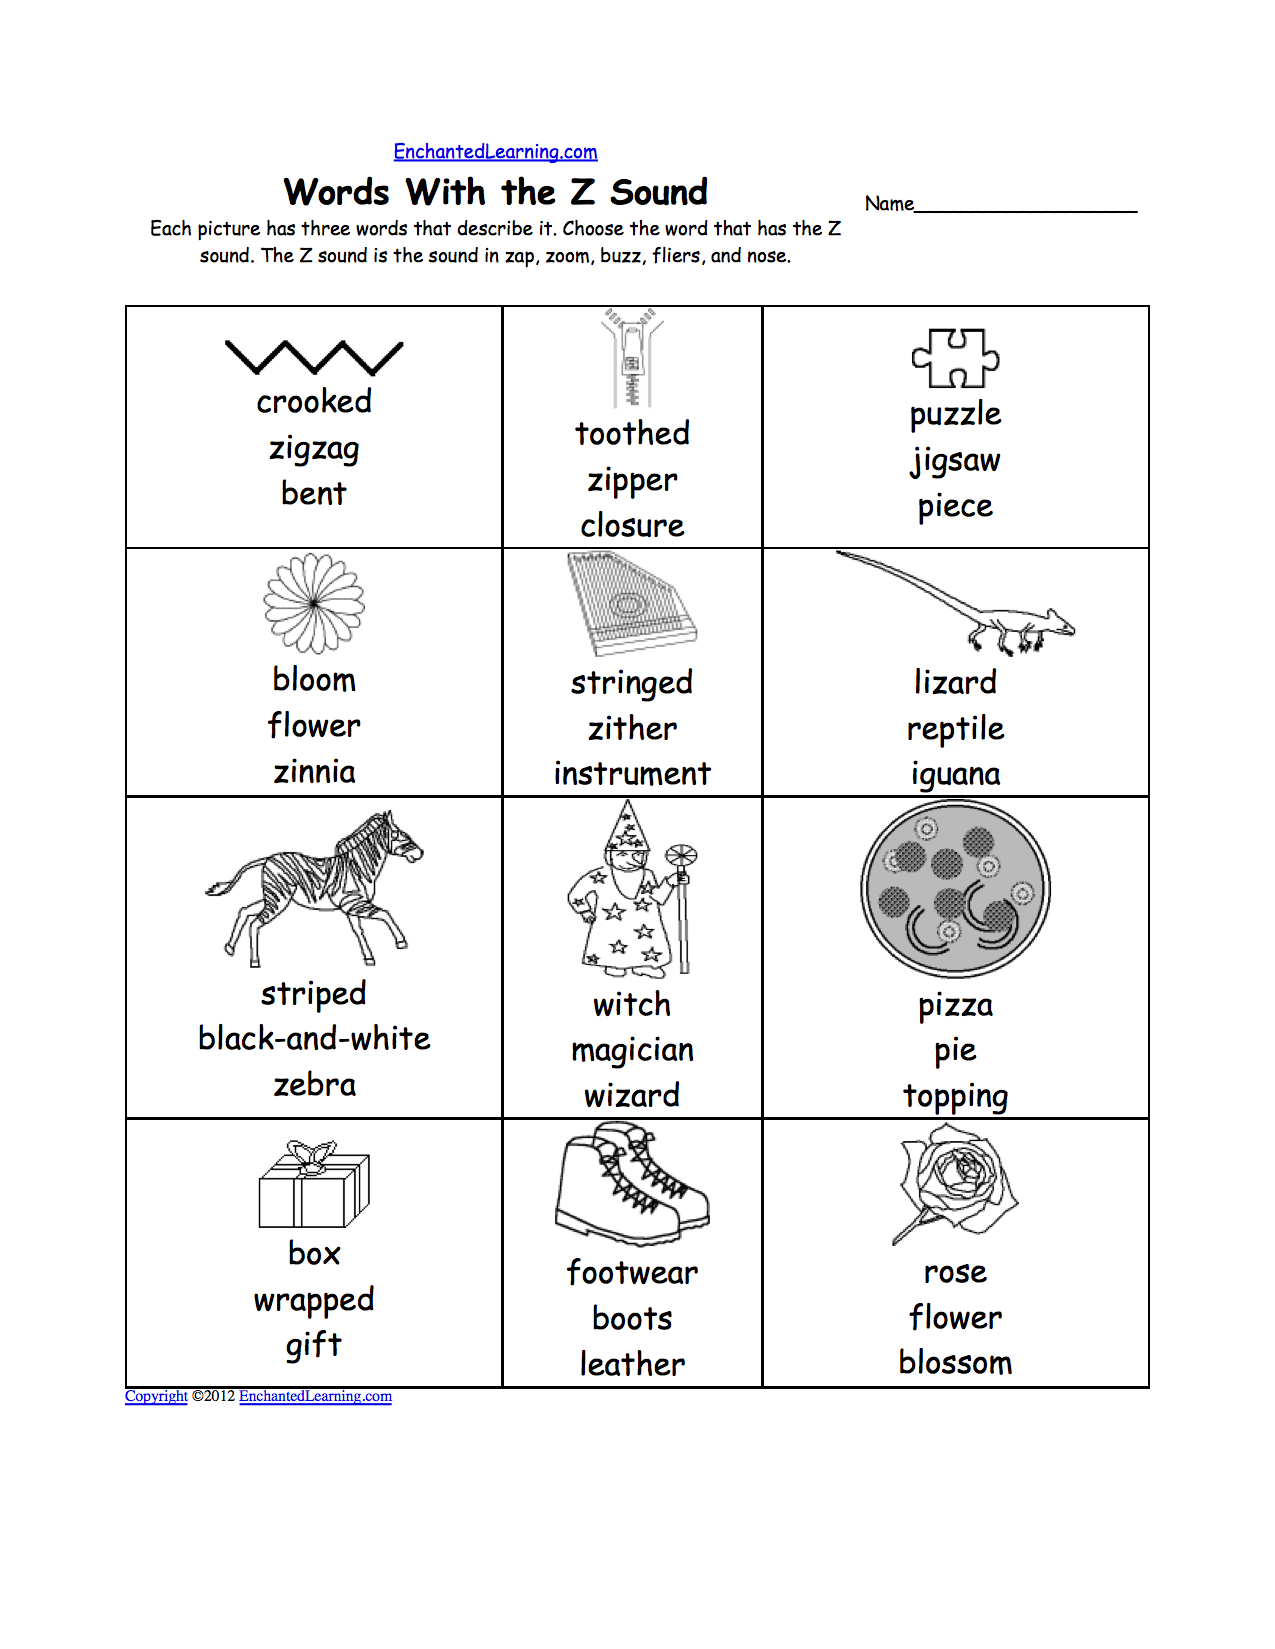 Weirdmailus  Mesmerizing Phonics Worksheets Multiple Choice Worksheets To Print  With Exciting Phonics Worksheets Multiple Choice Worksheets To Print  Enchantedlearningcom With Amusing Worksheets For Days Of The Week Also Skimming And Scanning Worksheet In Addition First Fleet Worksheets And Grade  Natural Science Worksheets As Well As Herbivores Omnivores Carnivores Worksheets Additionally Silent B Worksheets From Enchantedlearningcom With Weirdmailus  Exciting Phonics Worksheets Multiple Choice Worksheets To Print  With Amusing Phonics Worksheets Multiple Choice Worksheets To Print  Enchantedlearningcom And Mesmerizing Worksheets For Days Of The Week Also Skimming And Scanning Worksheet In Addition First Fleet Worksheets From Enchantedlearningcom